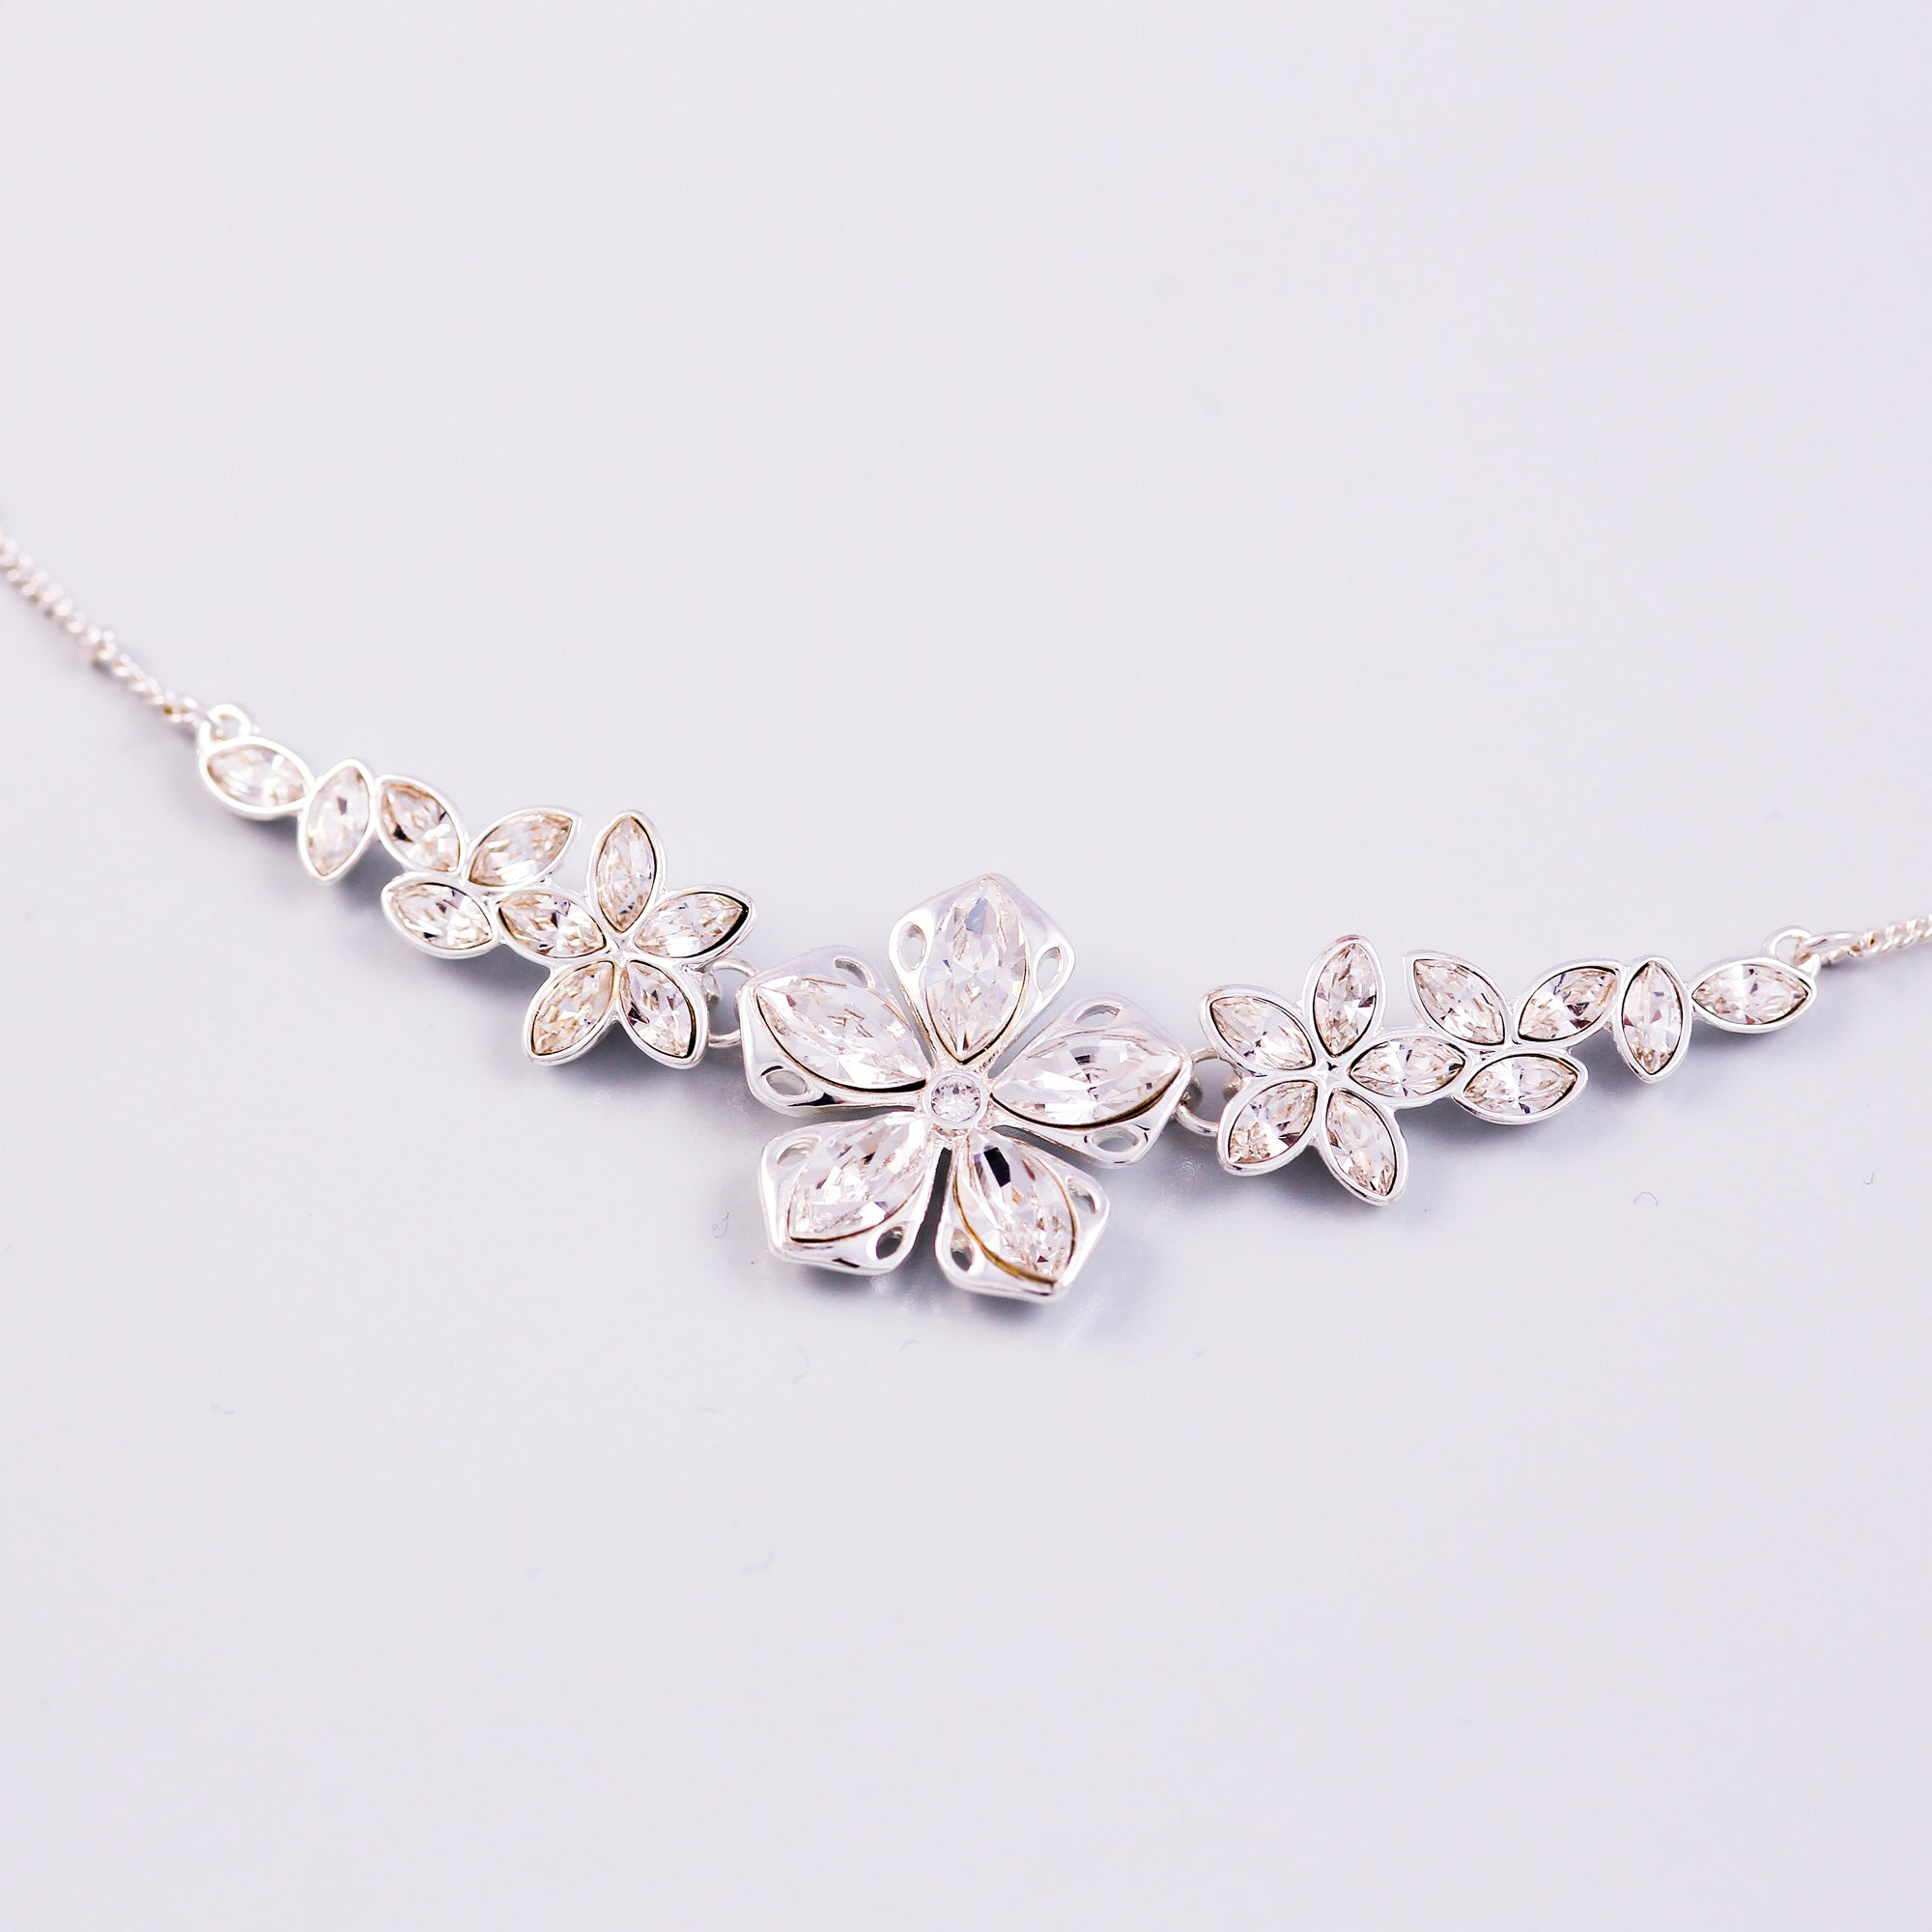 Silver & Crystal|Cherry Blossom|Sakura Collar|Wedding Jewellery